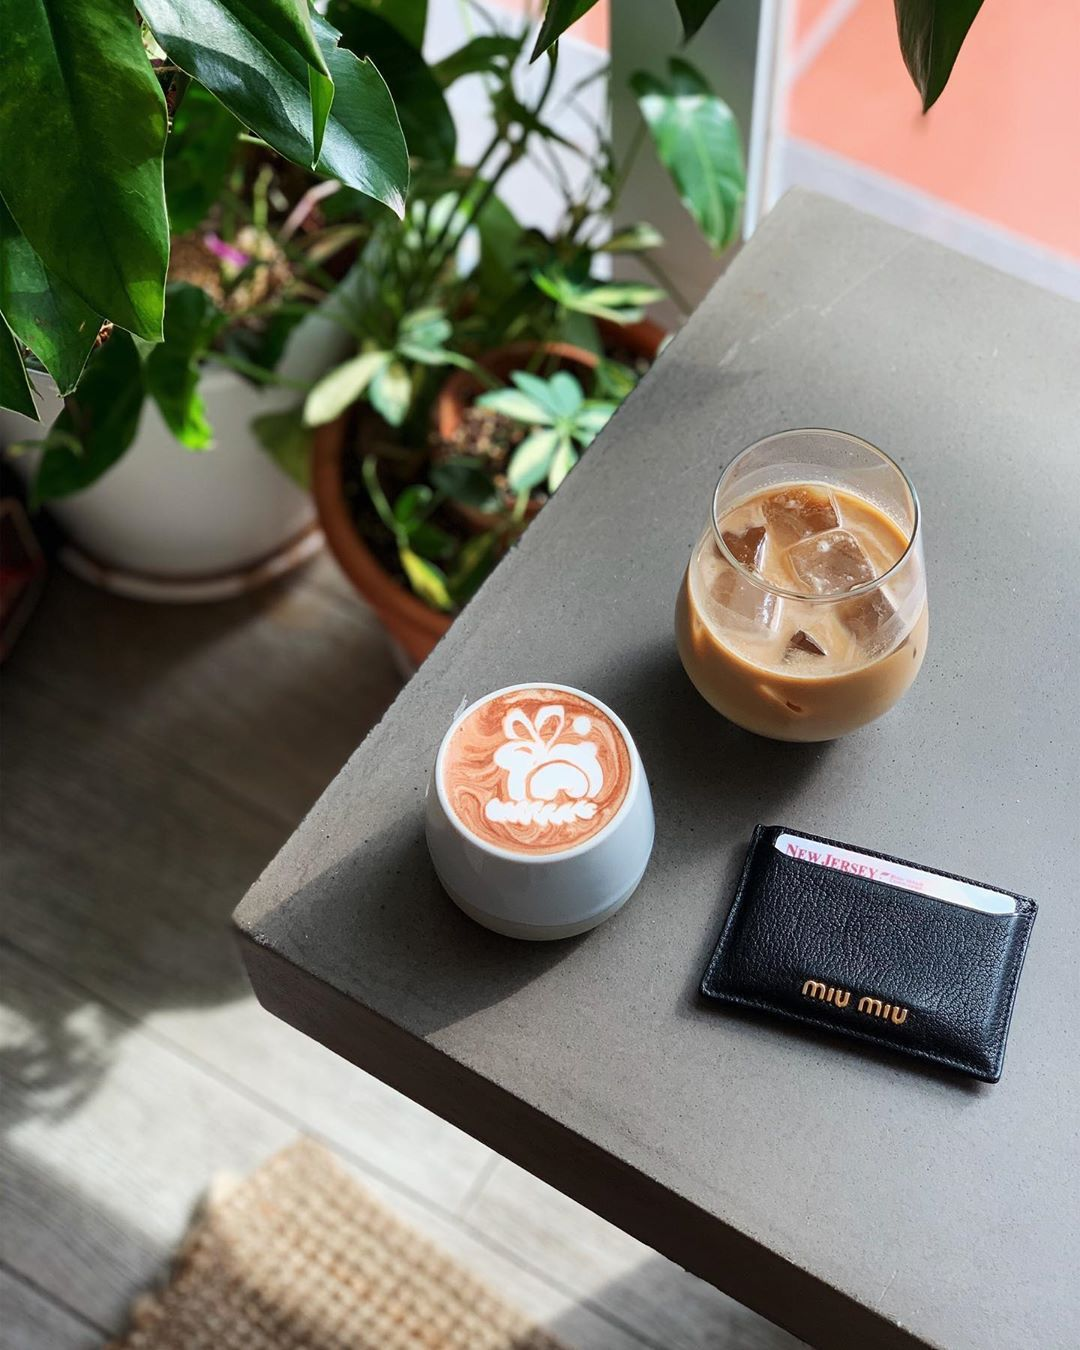 Laura Nyc On Instagram Started The Week Bright Early Wbu In 2020 Coffee Latte Art Coffee Store Coffee Addict